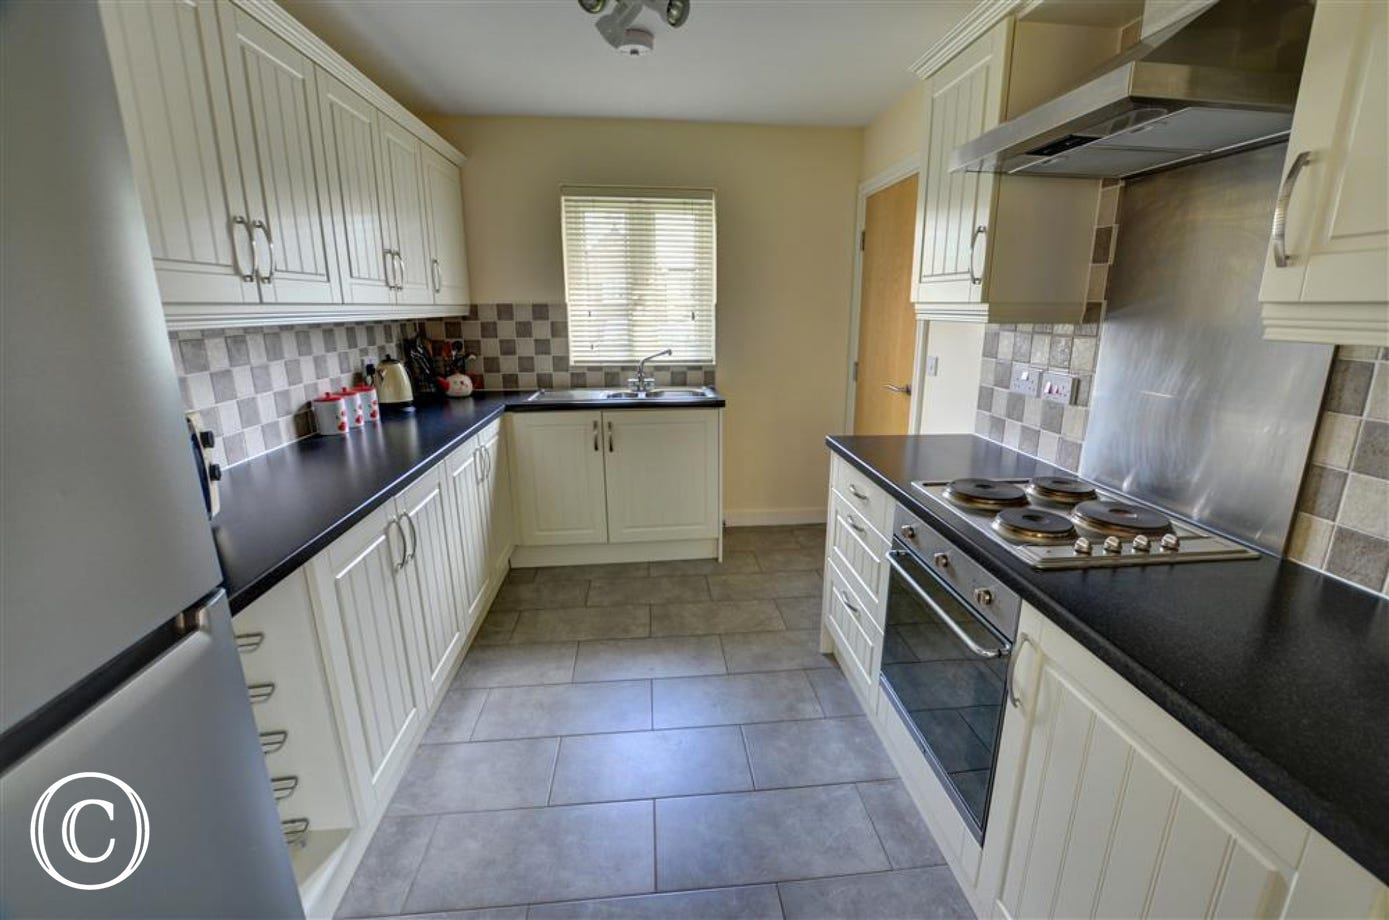 The smart fitted kitchen has light units and a tiled floor